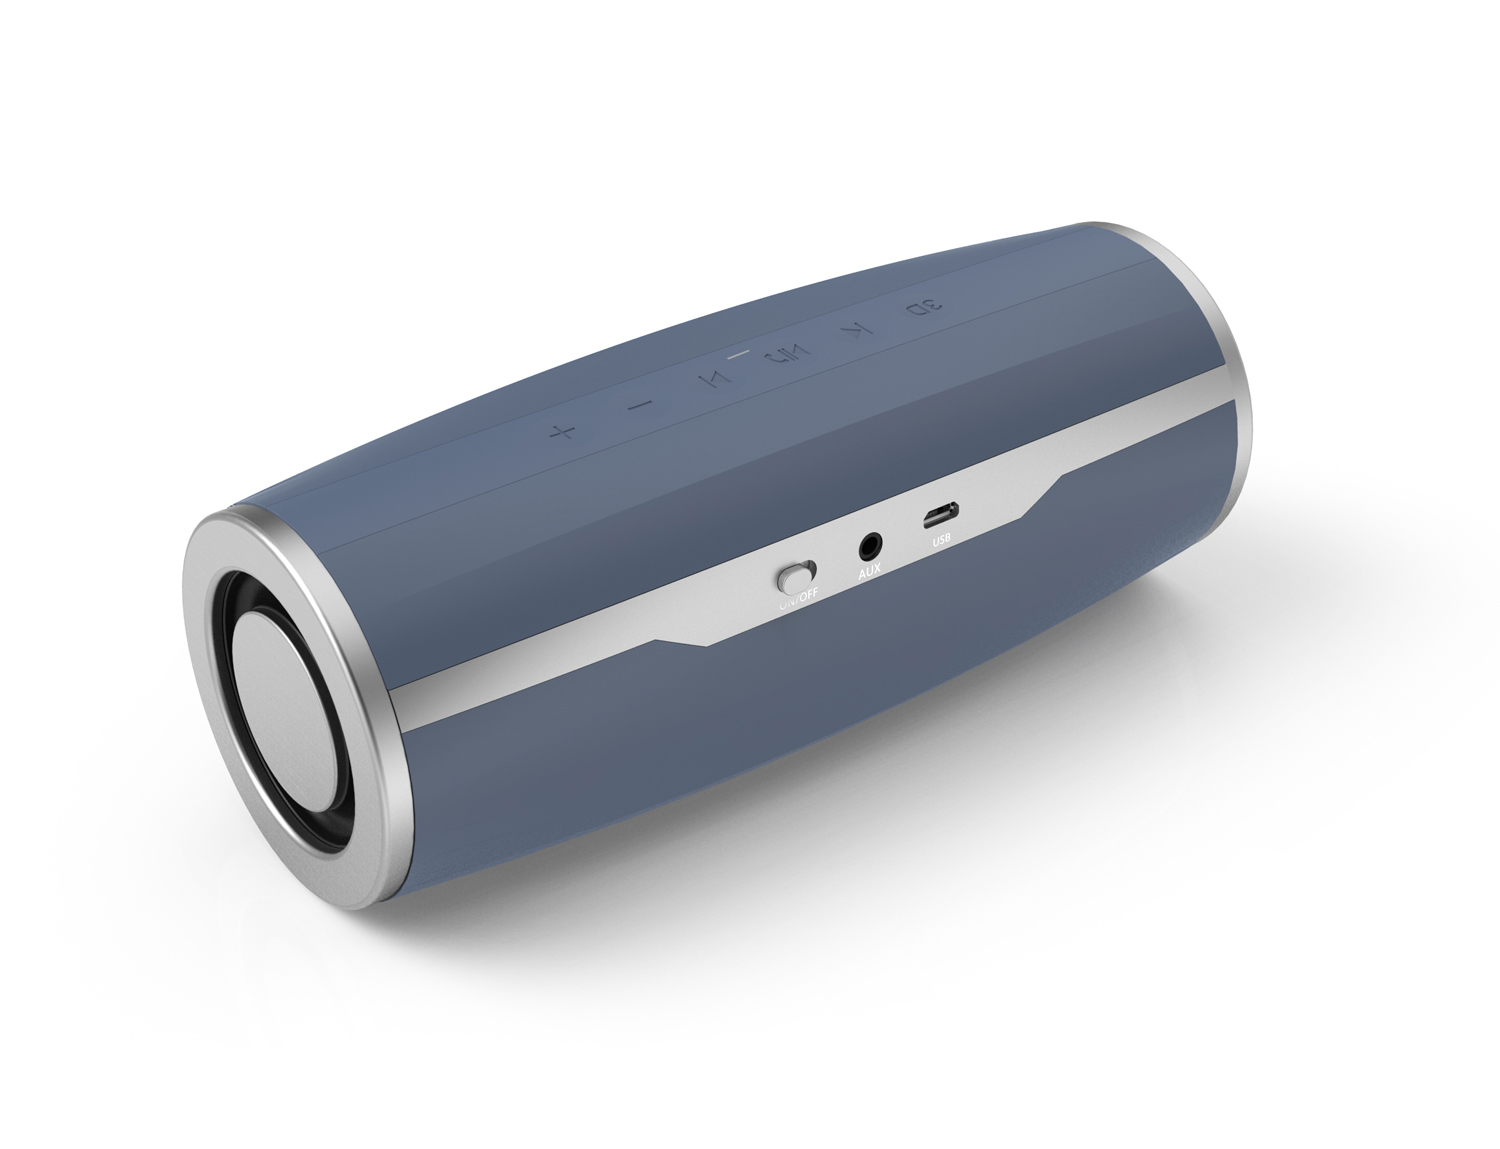 Double 5Watts Drivers Portable Bluetooth Speaker Support NFC With Aux In Jack